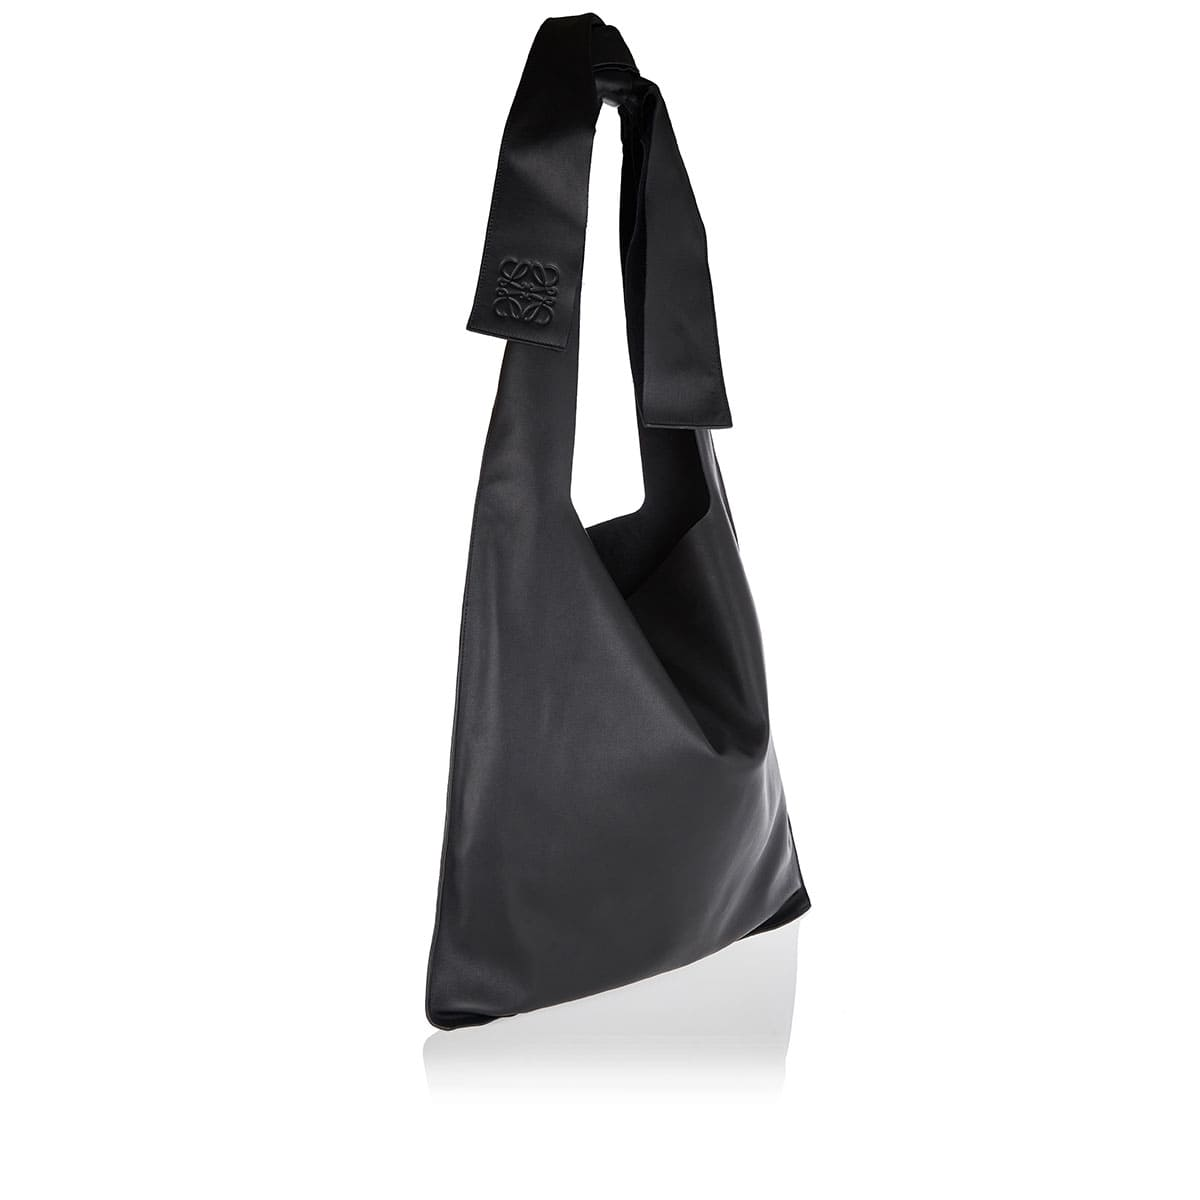 Bow leather tote